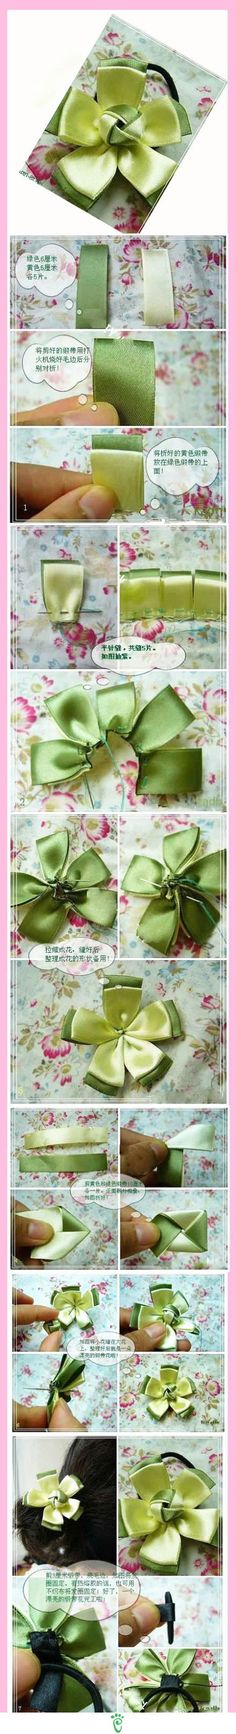 Make your own hair accessories. Easy Peasy Strawberry ^o^V